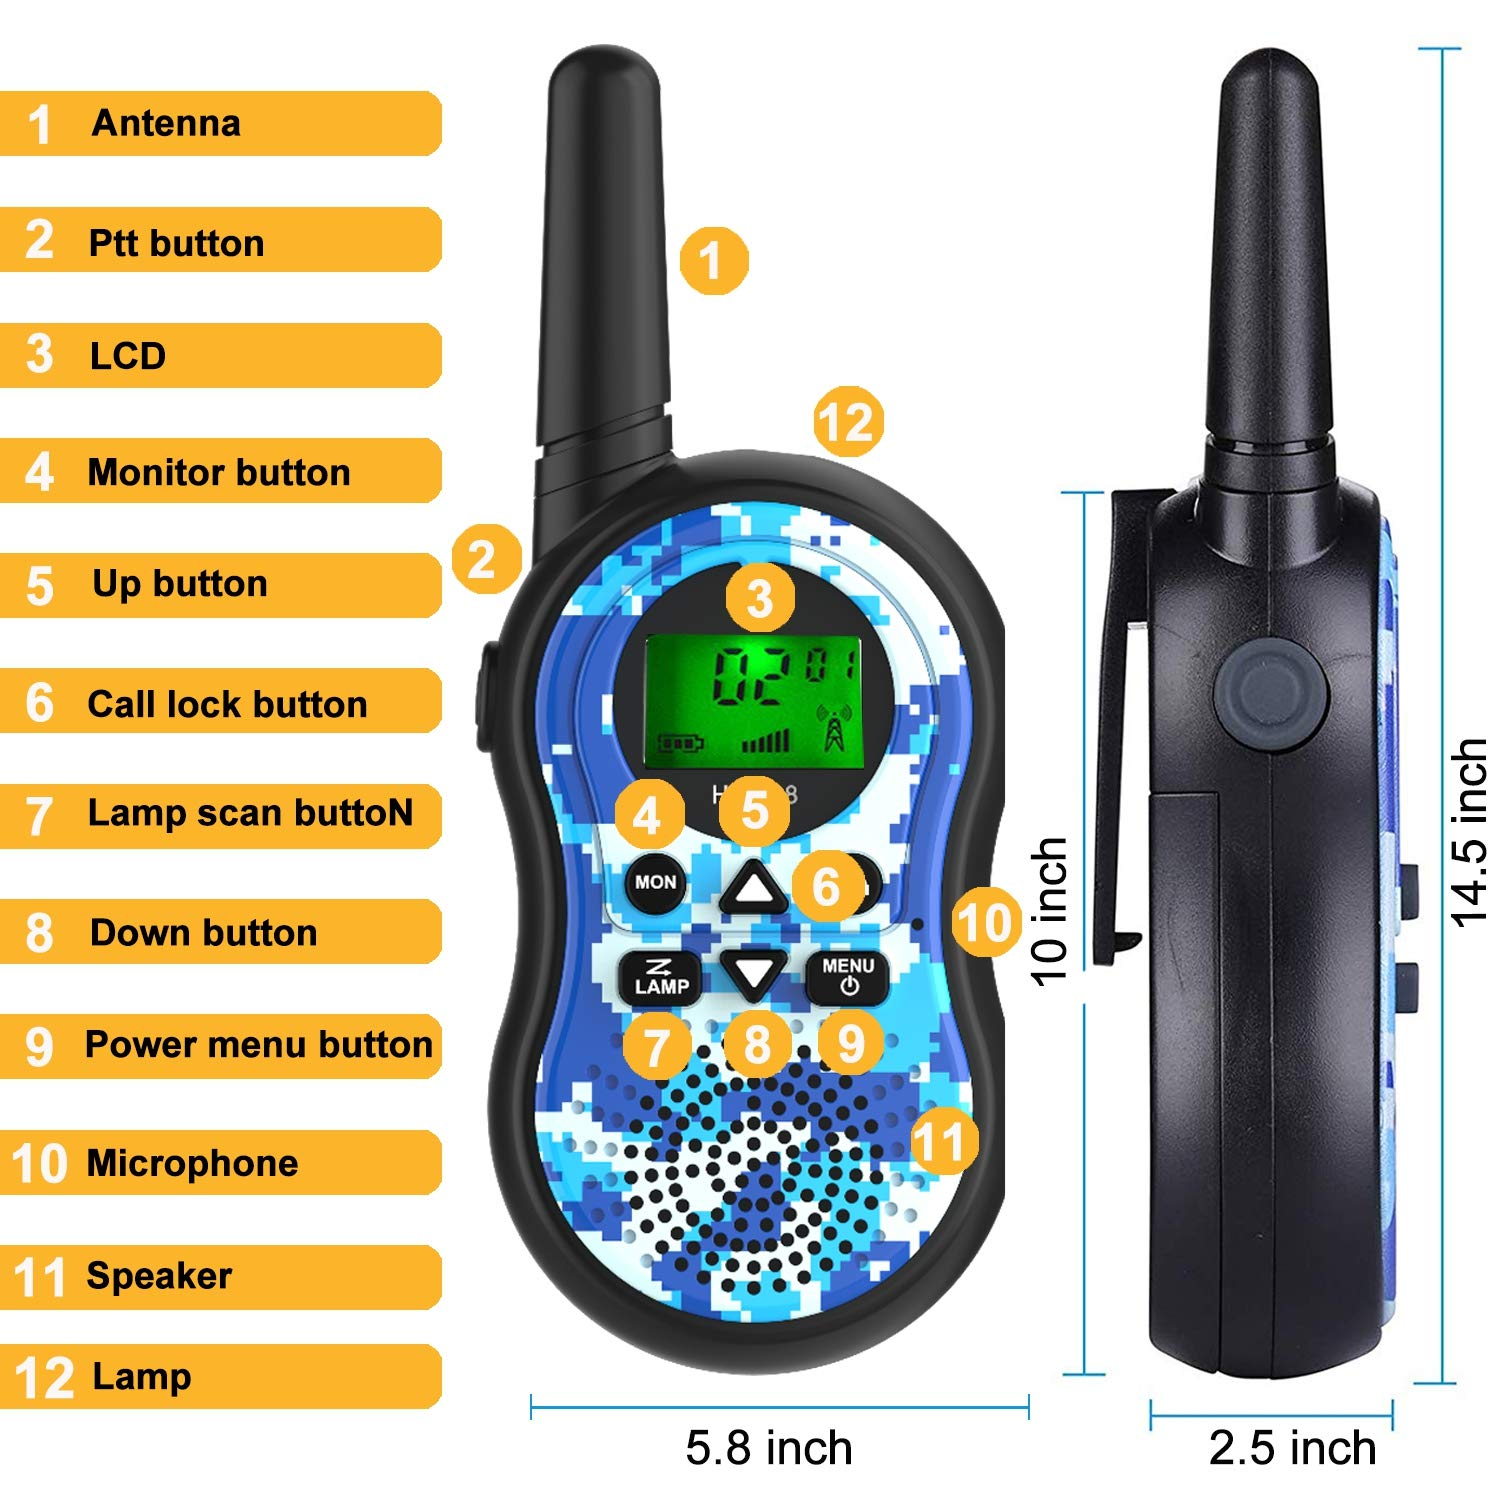 GreaSmart Kids Walkie Talkies,6 Pack 22 Channels Two Way Radio Long Range Kids Toys & Handheld Walkie Talkie with LCD Flashlight Best Gifts for Boy Girls Family Back to Shool Game Outdoor Adventures by GreaSmart (Image #2)